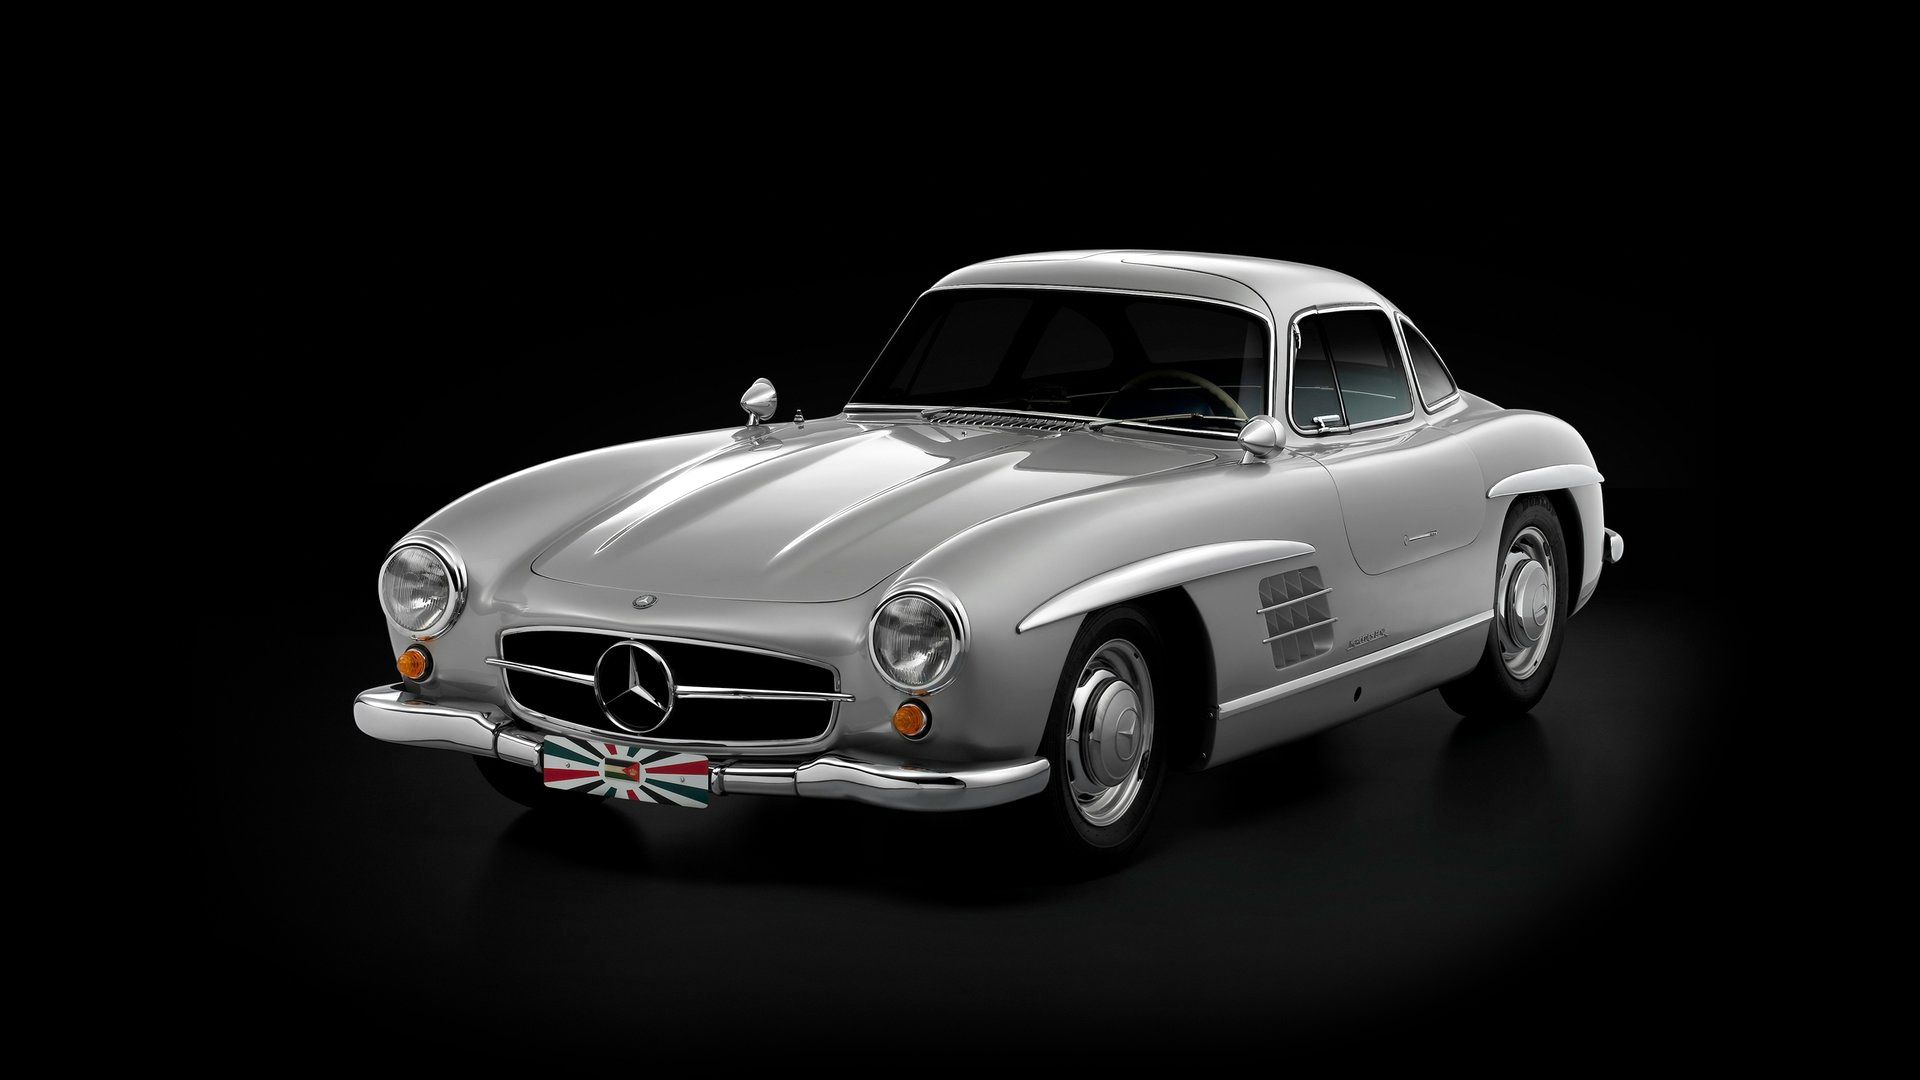 Mercedes Benz 300 Sl Wallpapers Hd